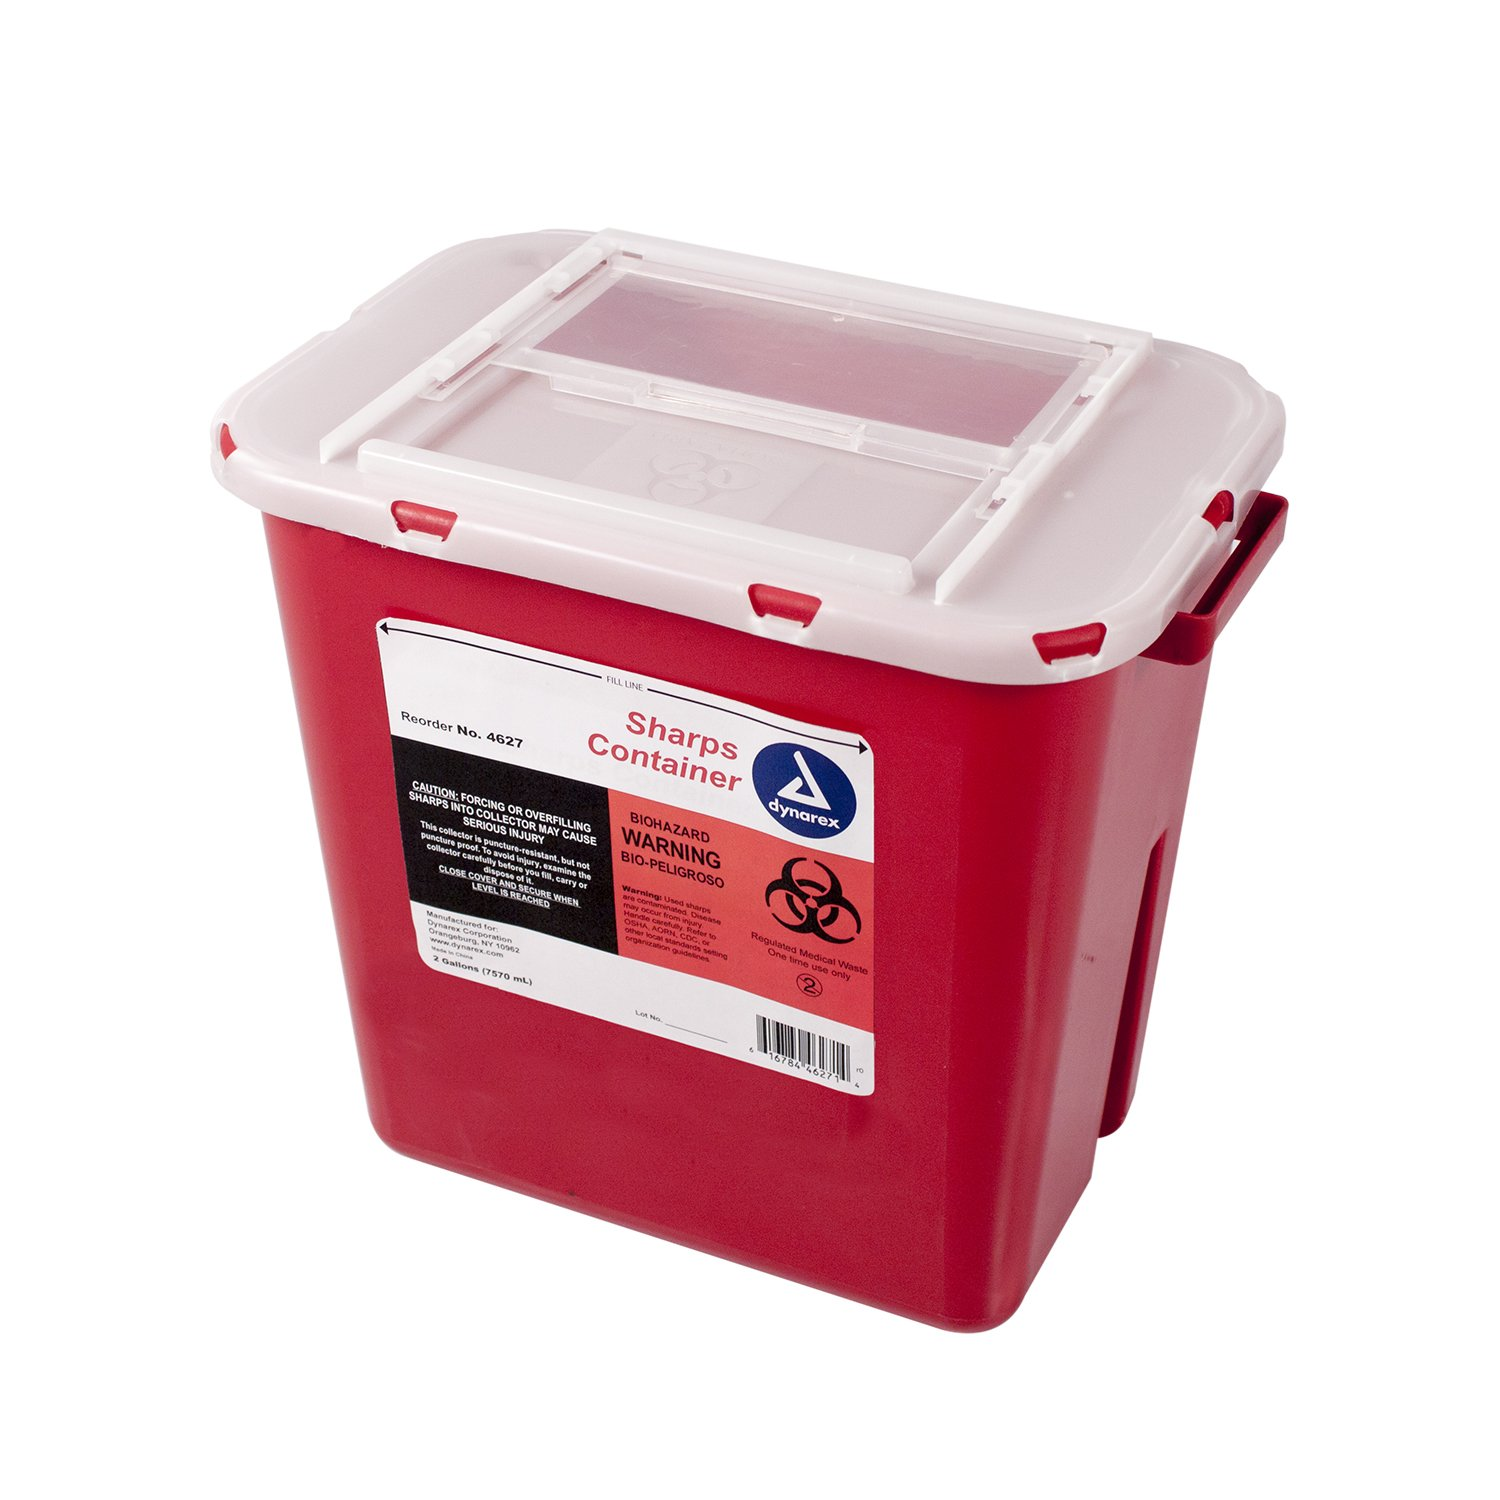 Dynarex Sharps Container - Biohazard Multiple-Use Needle Disposable - Puncture Resistant - One Handed Use - 2 Gallon by Dynarex (Image #1)